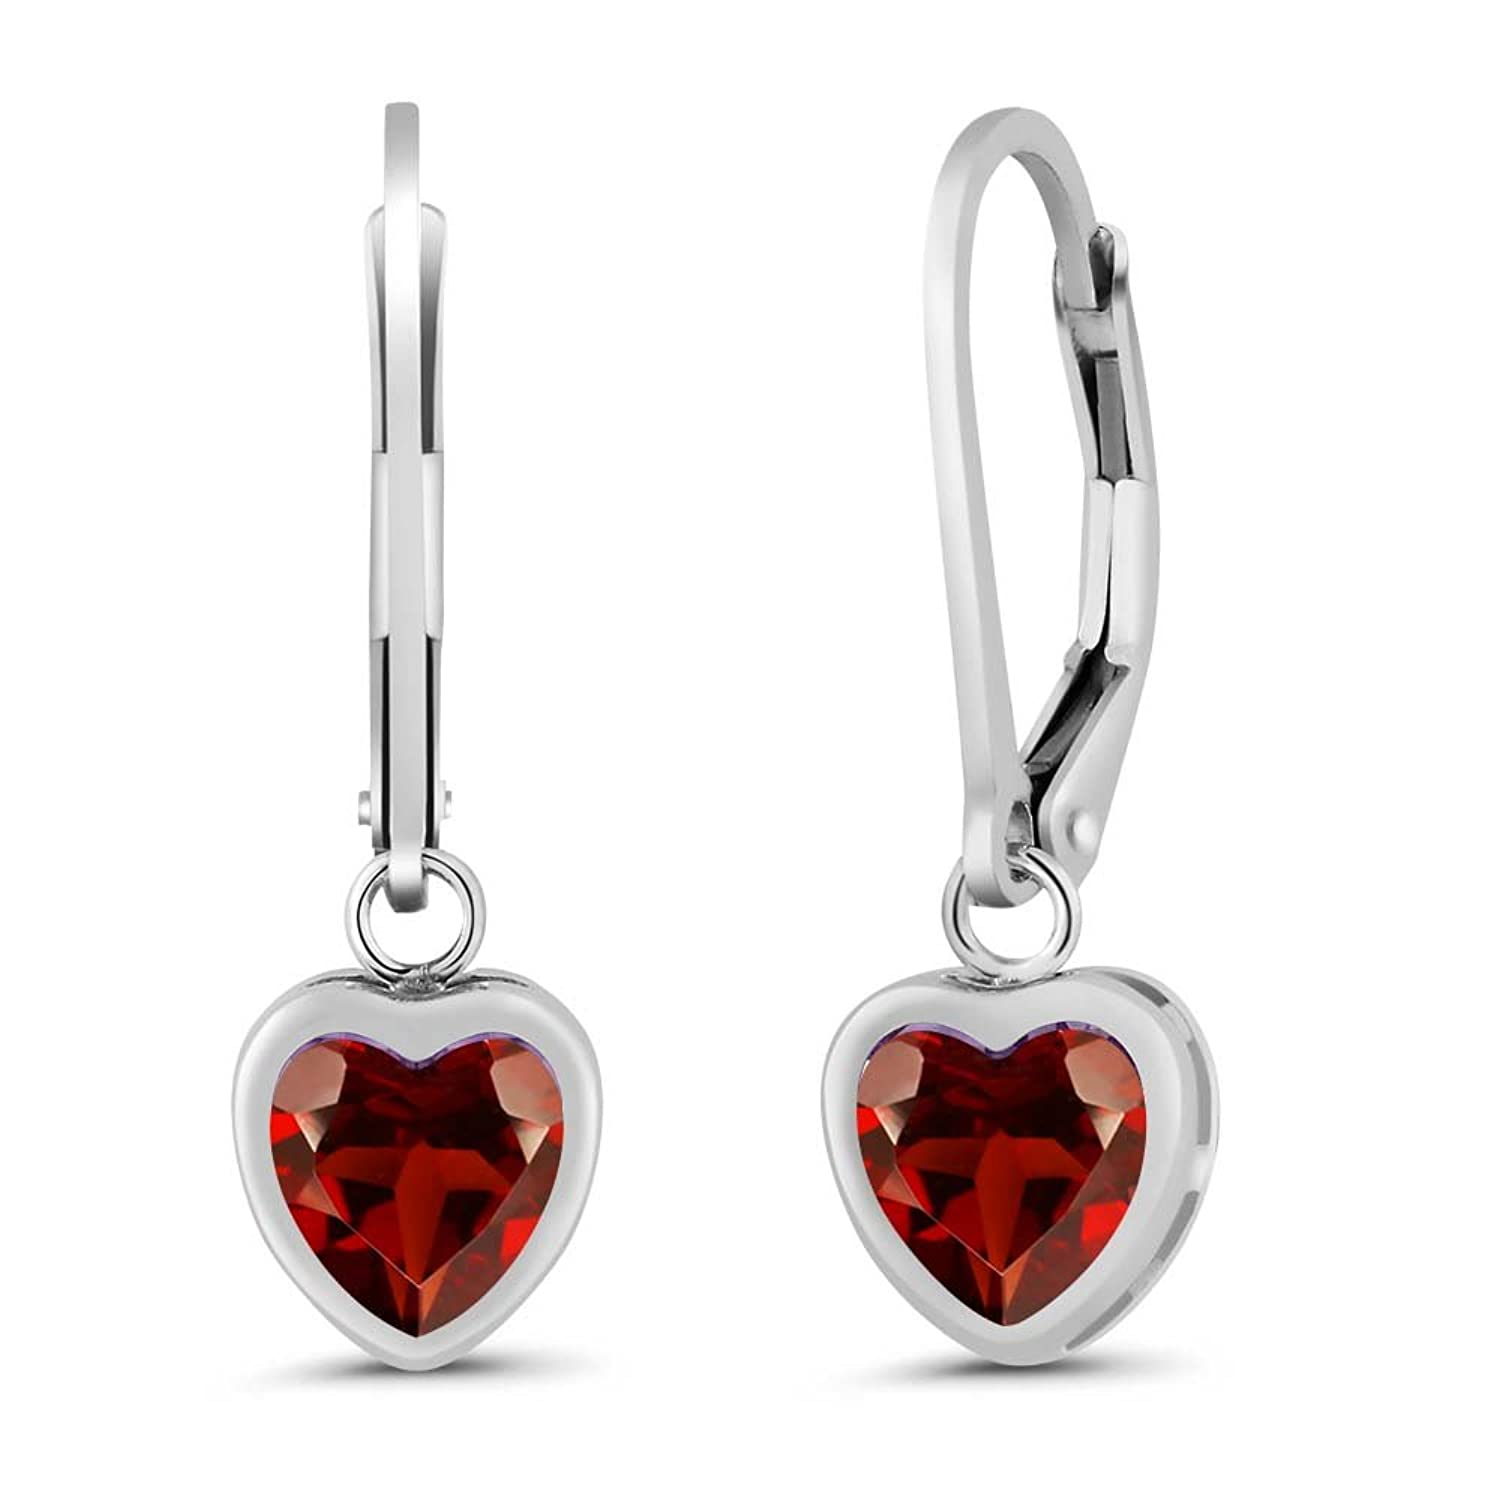 1.80 Ct Heart Shape Red Garnet 925 Sterling Silver Earrings